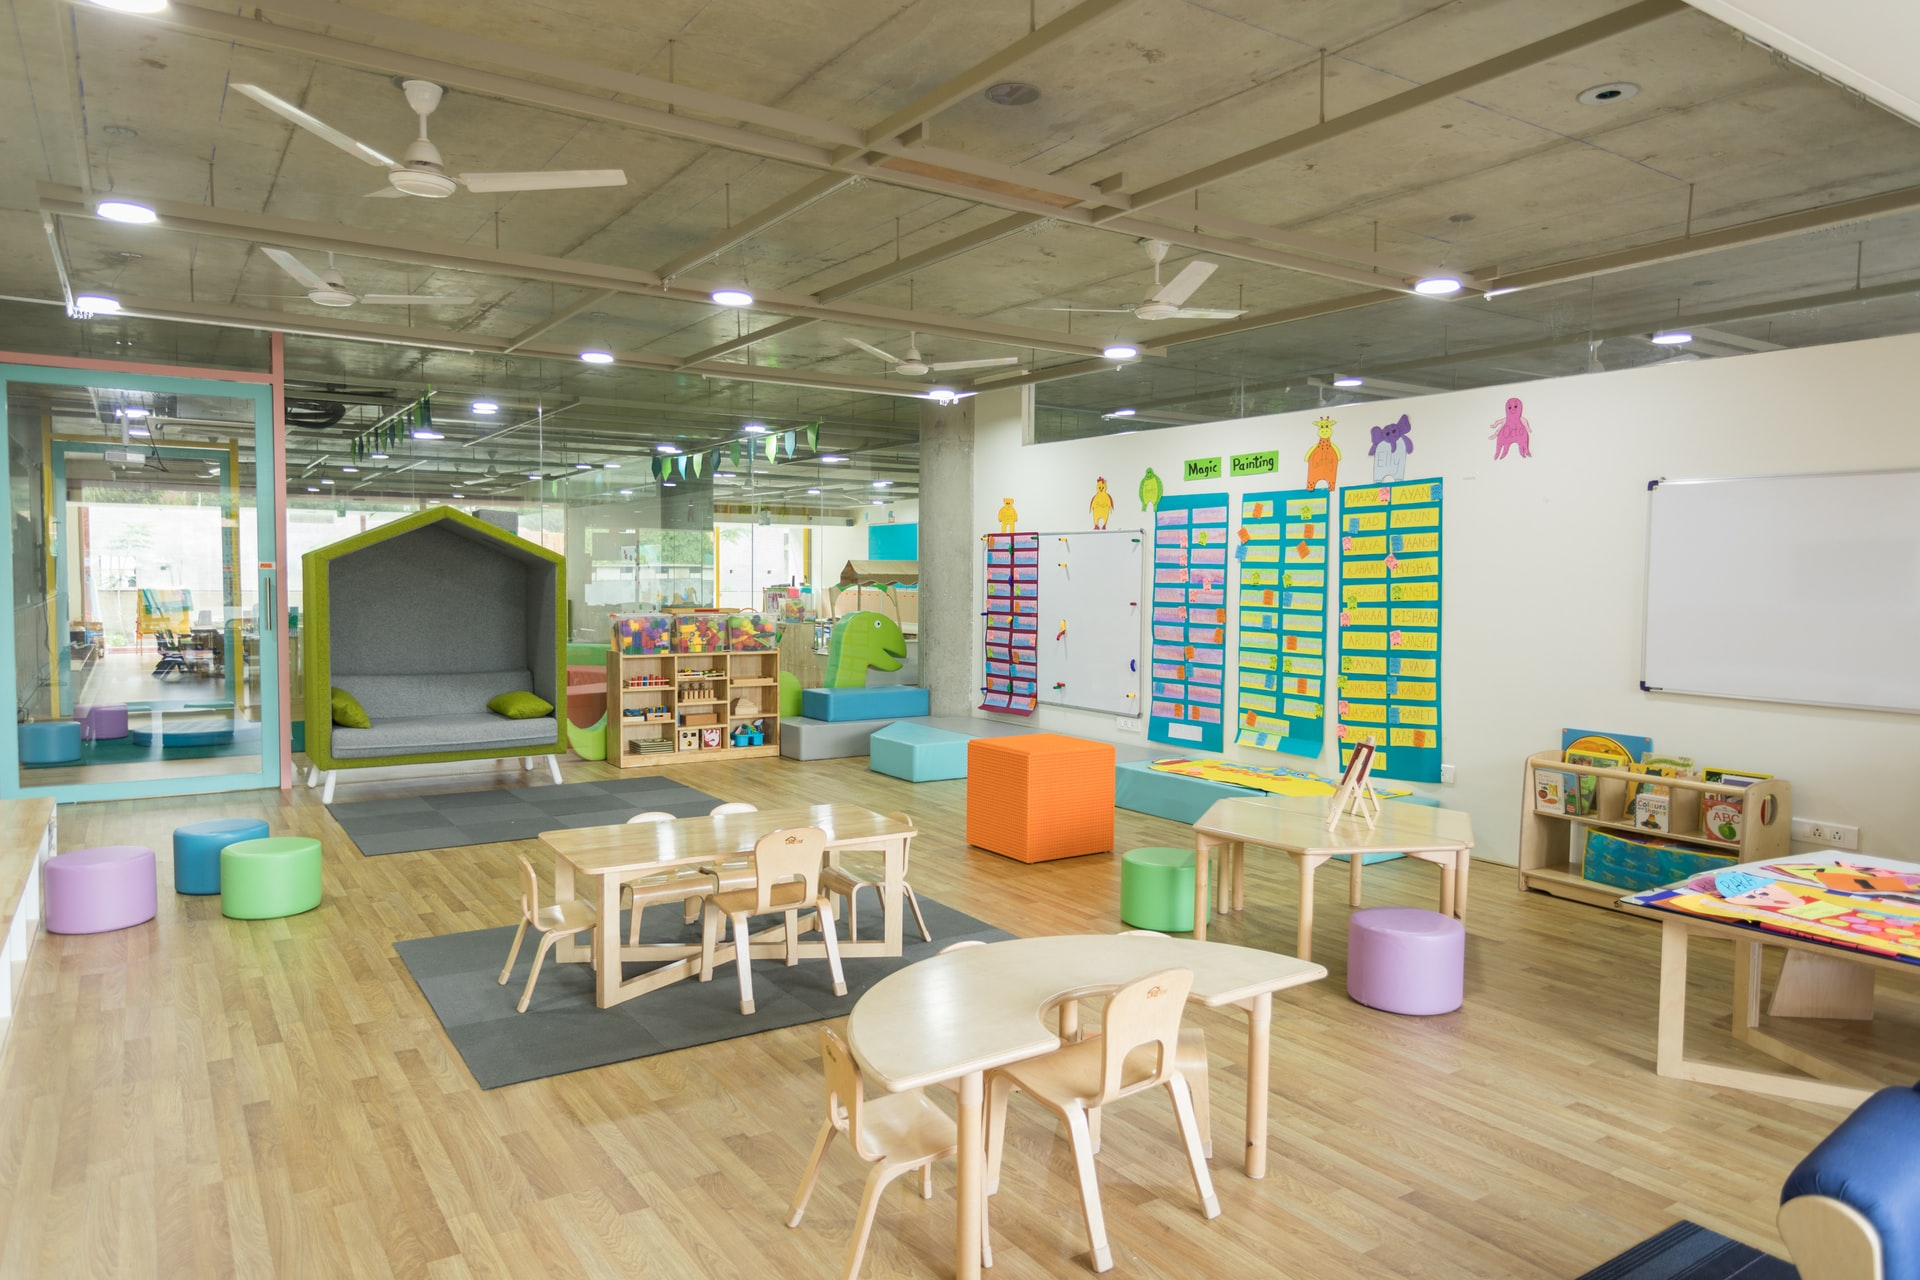 The Germiest Places in a Daycare